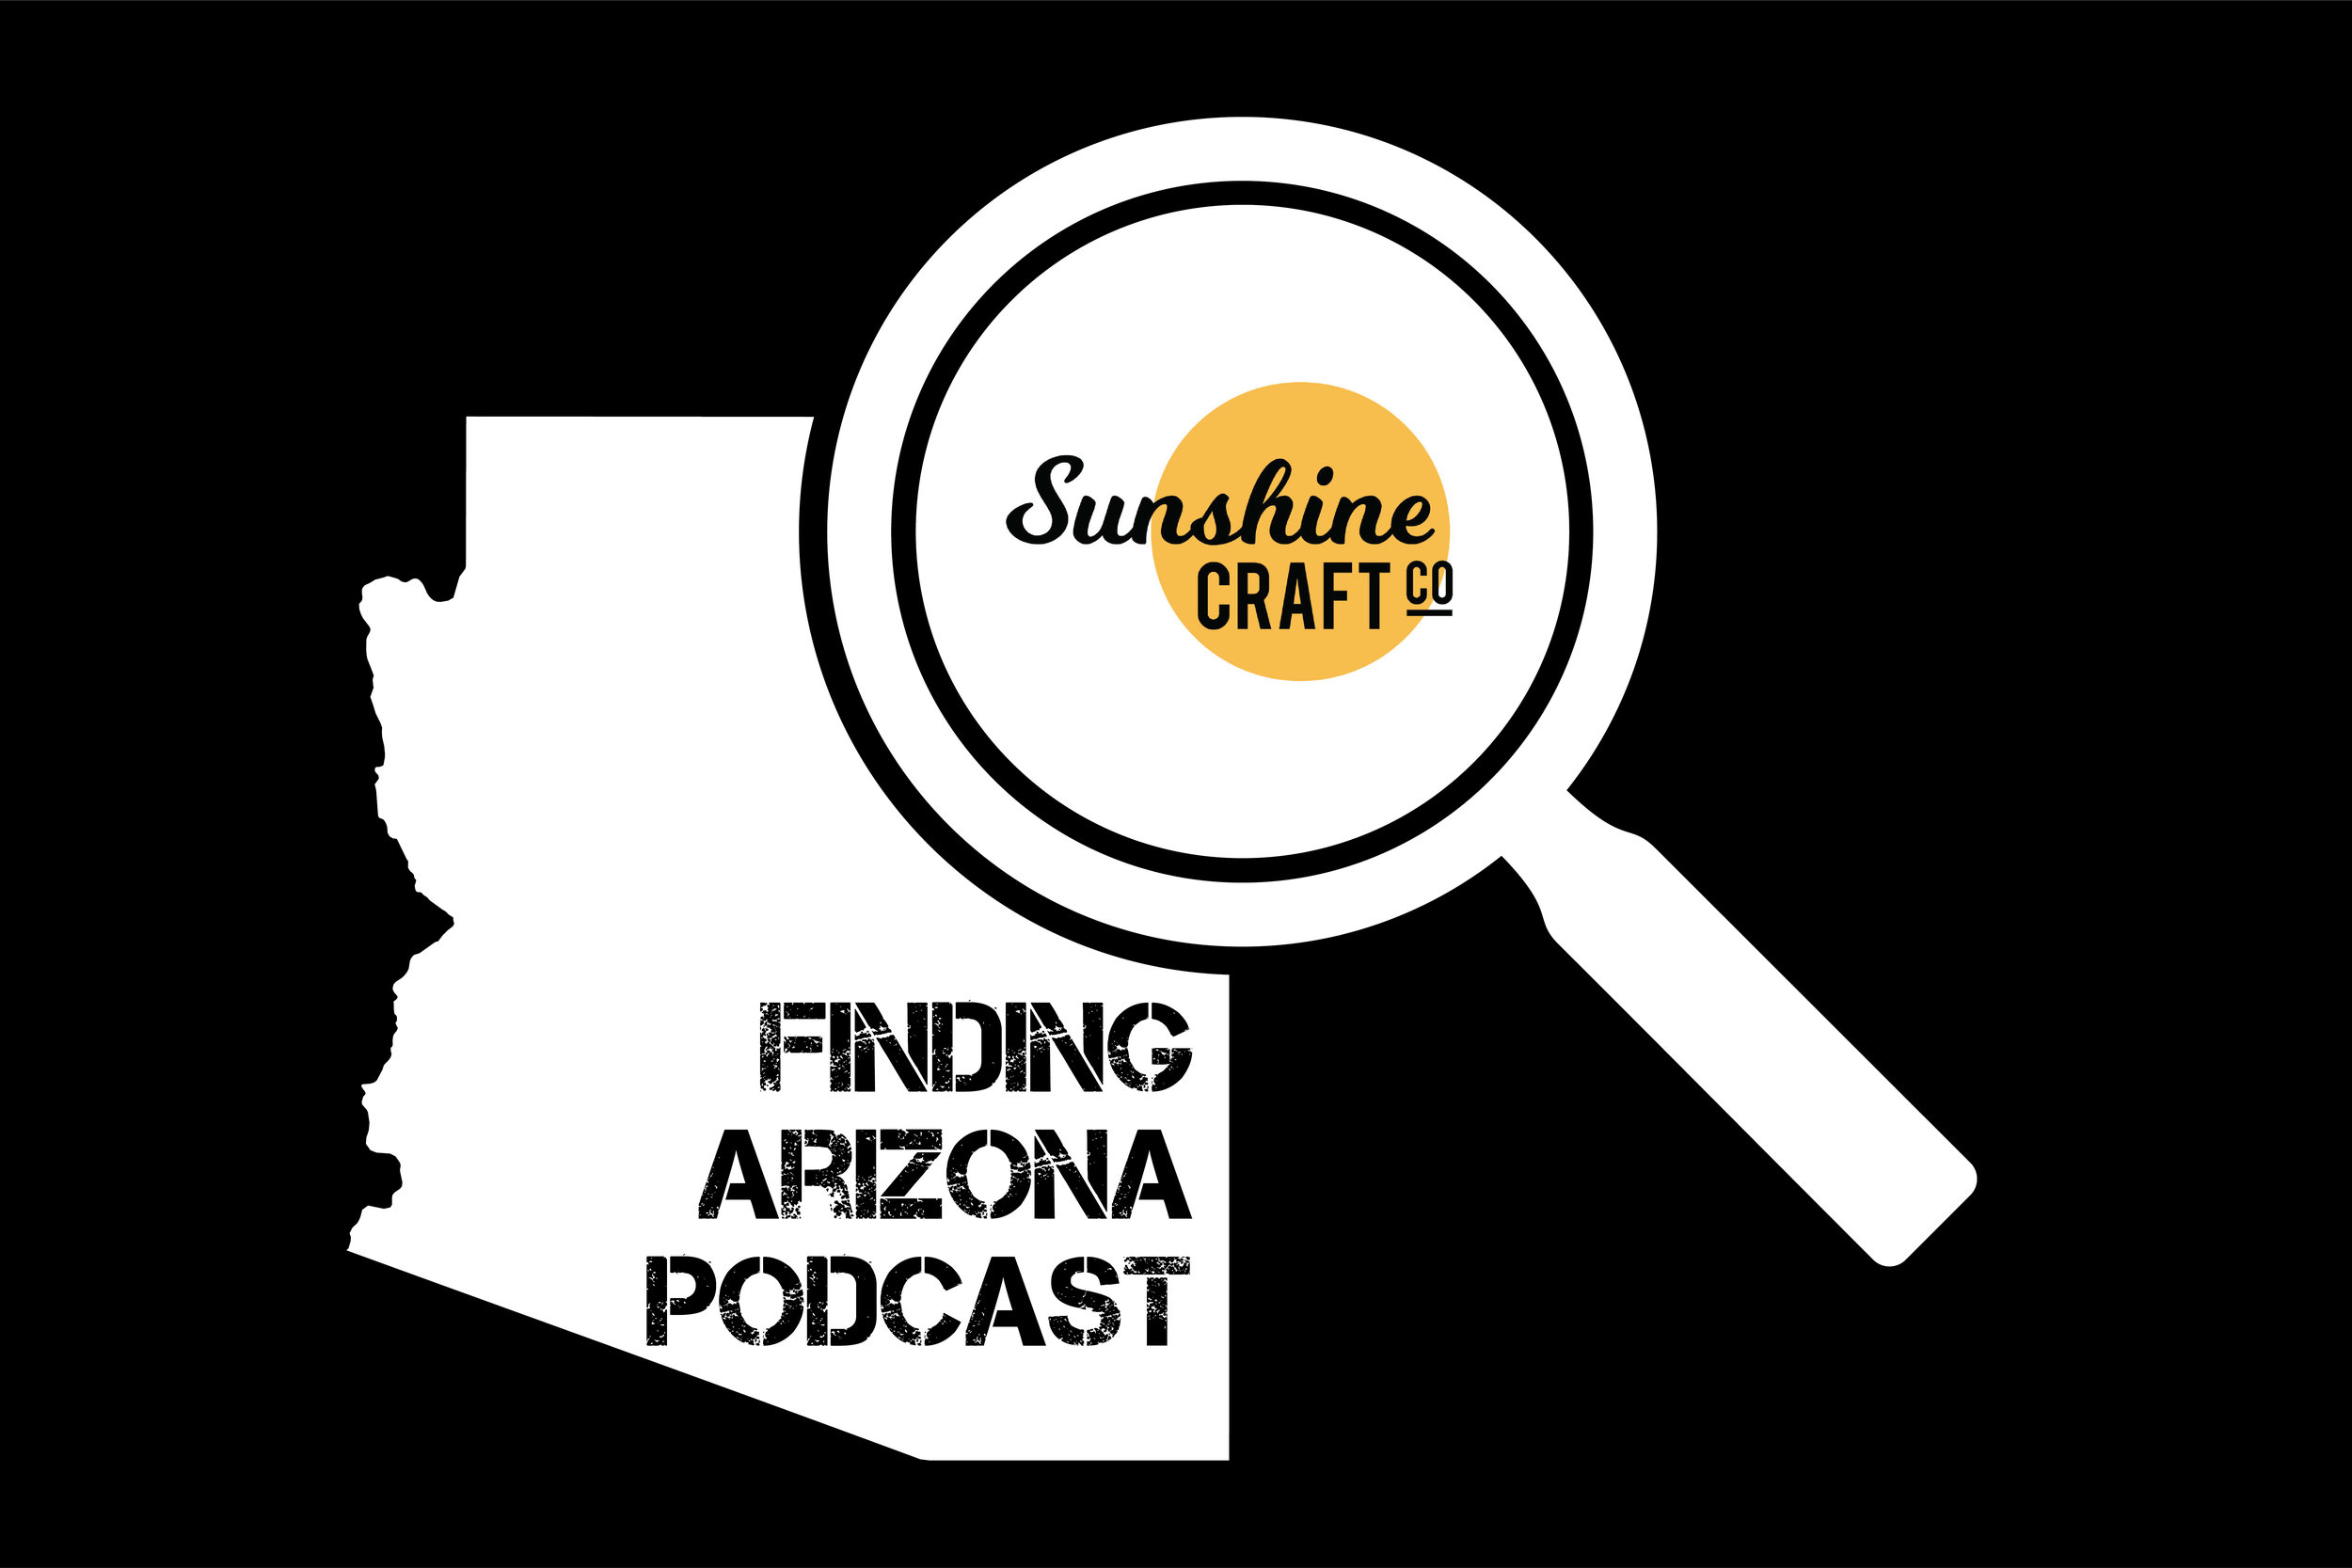 PodCastLogo-SunshineCraftCo-large.jpg